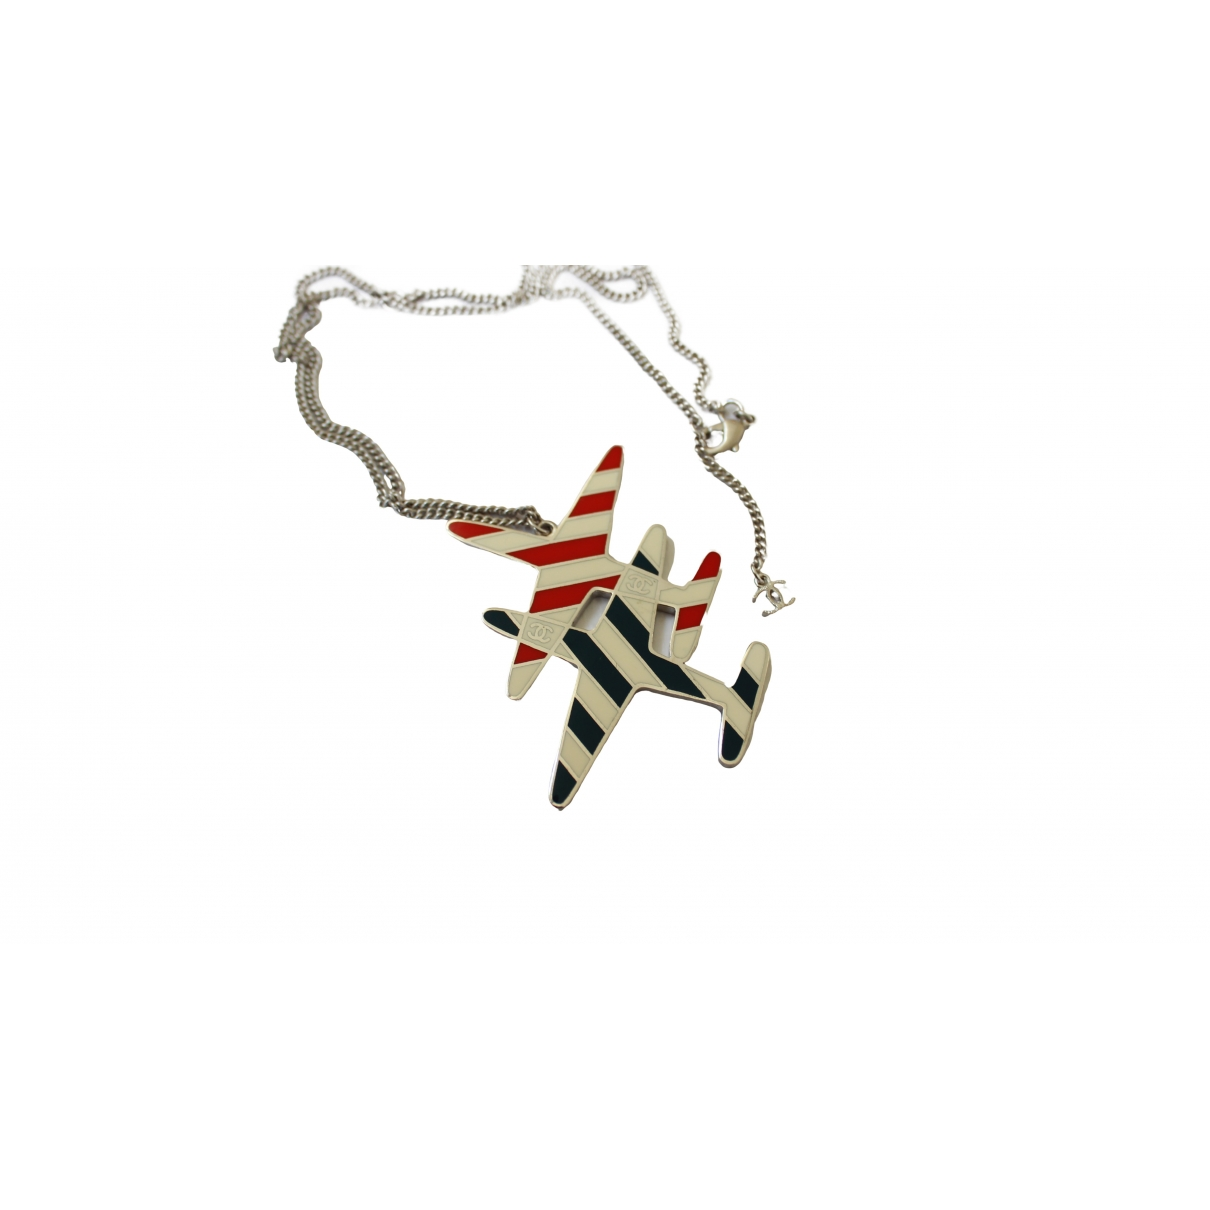 Chanel \N Multicolour Silver necklace for Women \N